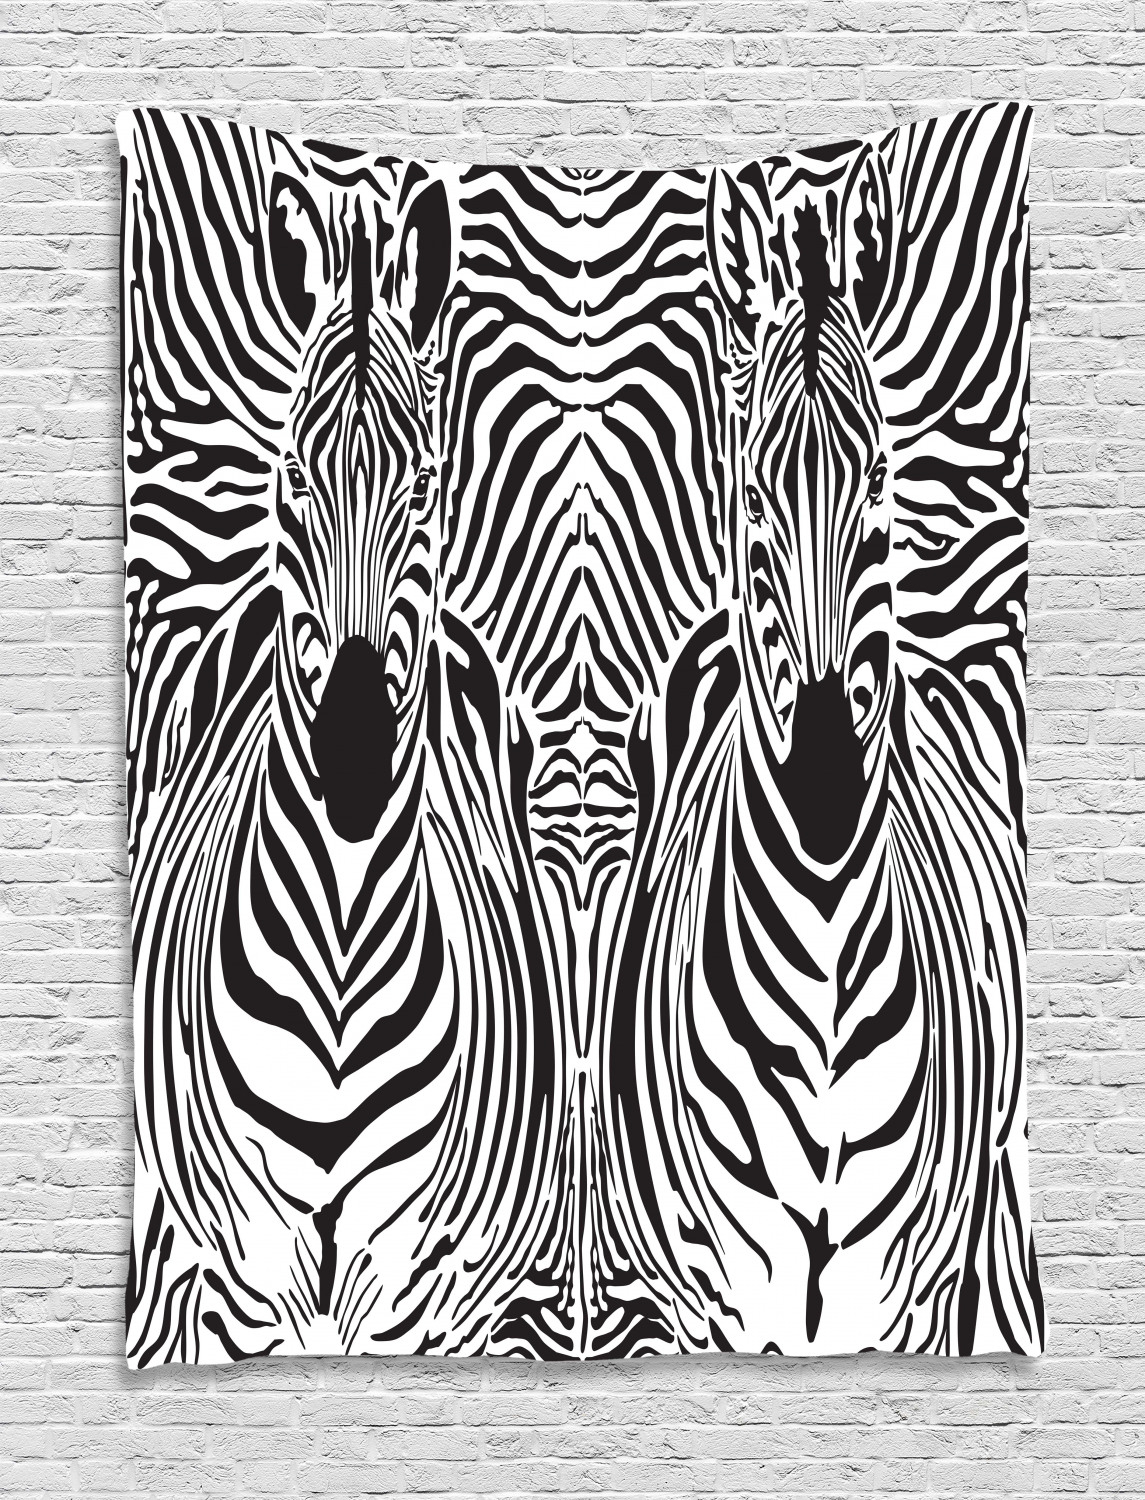 Zebra Print Decor Wall Hanging Tapestry, Illustration Pattern Zebras Skins Background Blended Over Zebra Body Heads, Bedroom Living Room Dorm For Most Current Blended Fabric Wall Hangings With Hanging Accessories Included (View 11 of 20)